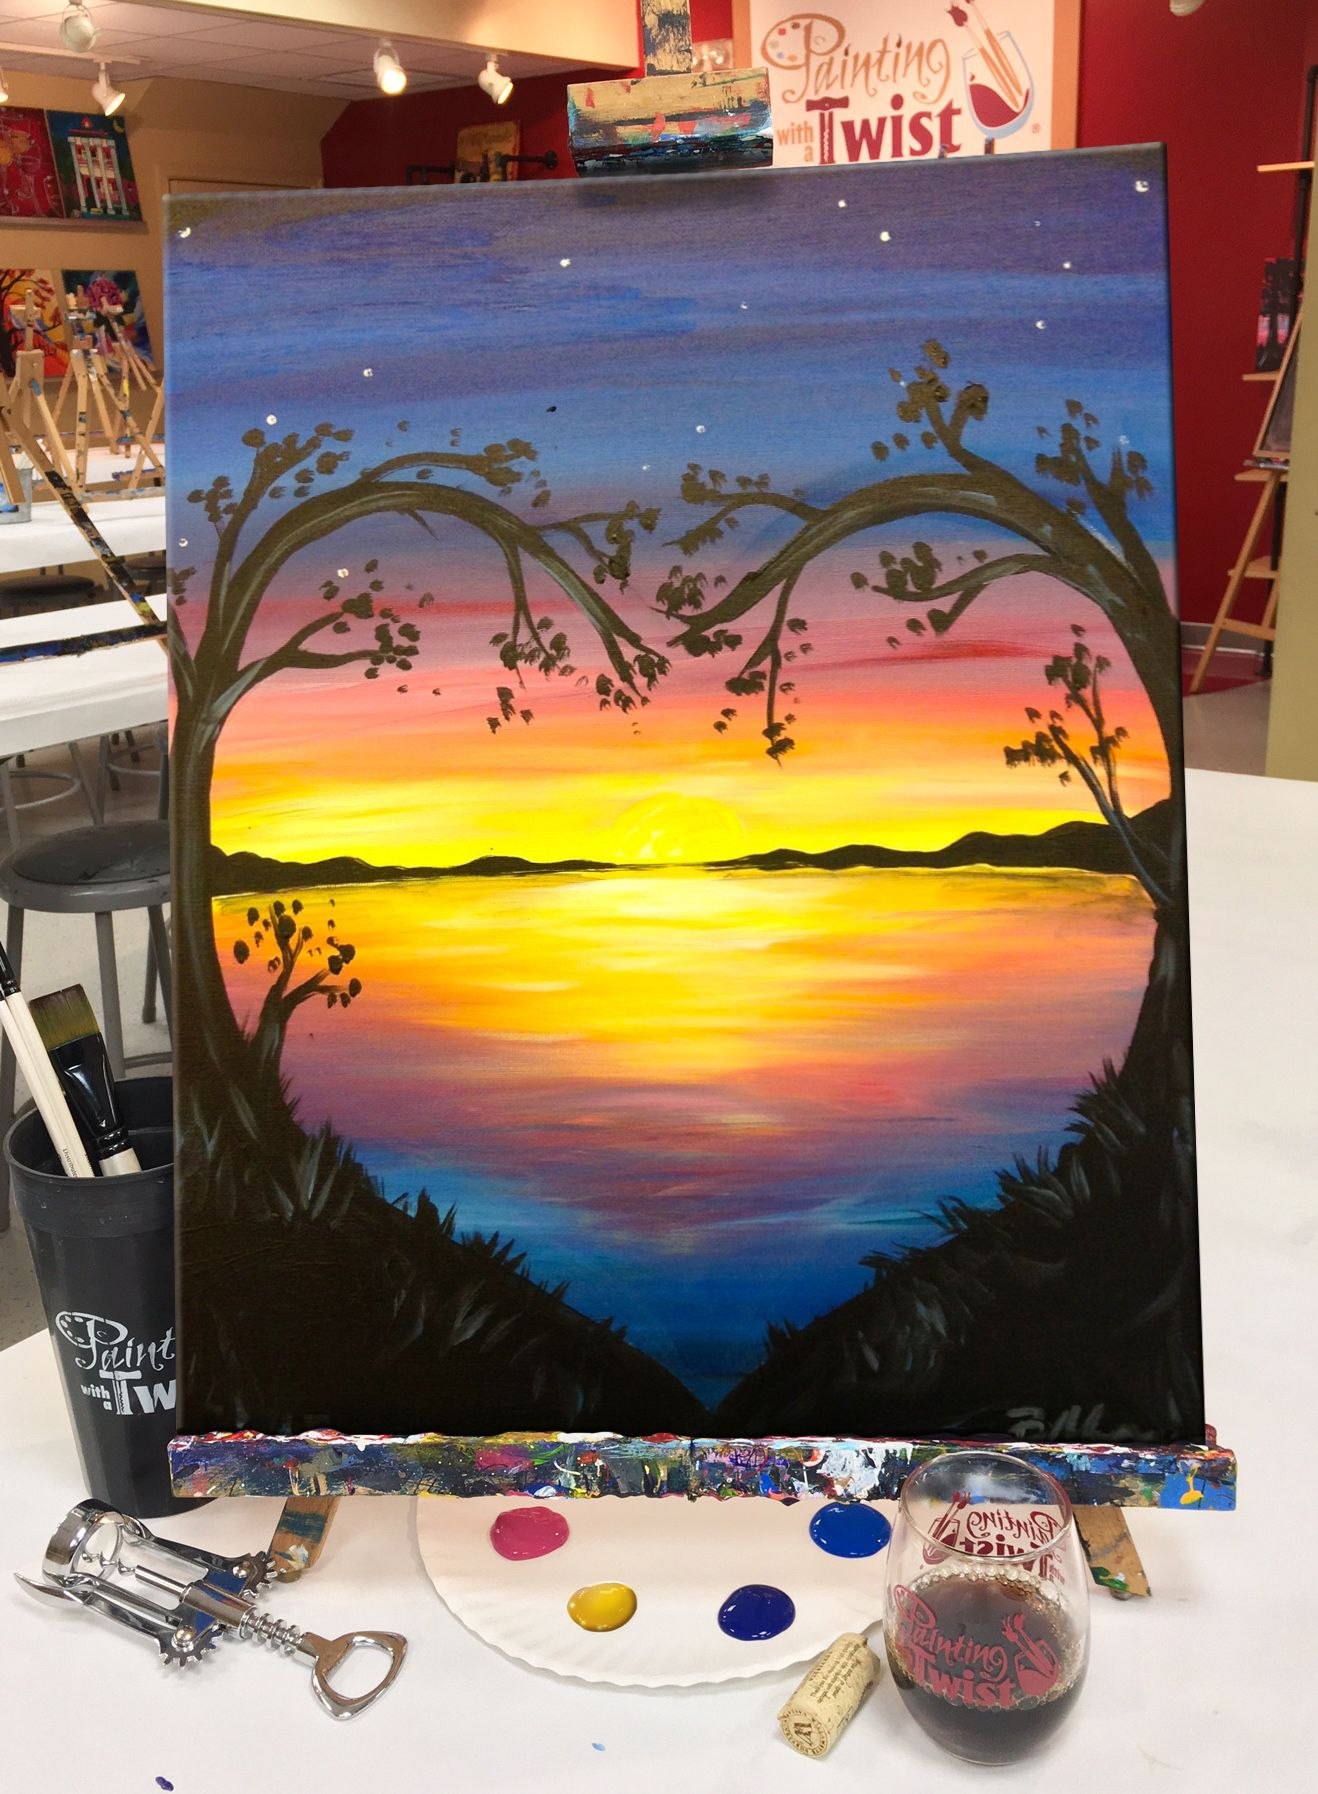 Pin By Painting With A Twist On Pwat Paintings In 2019